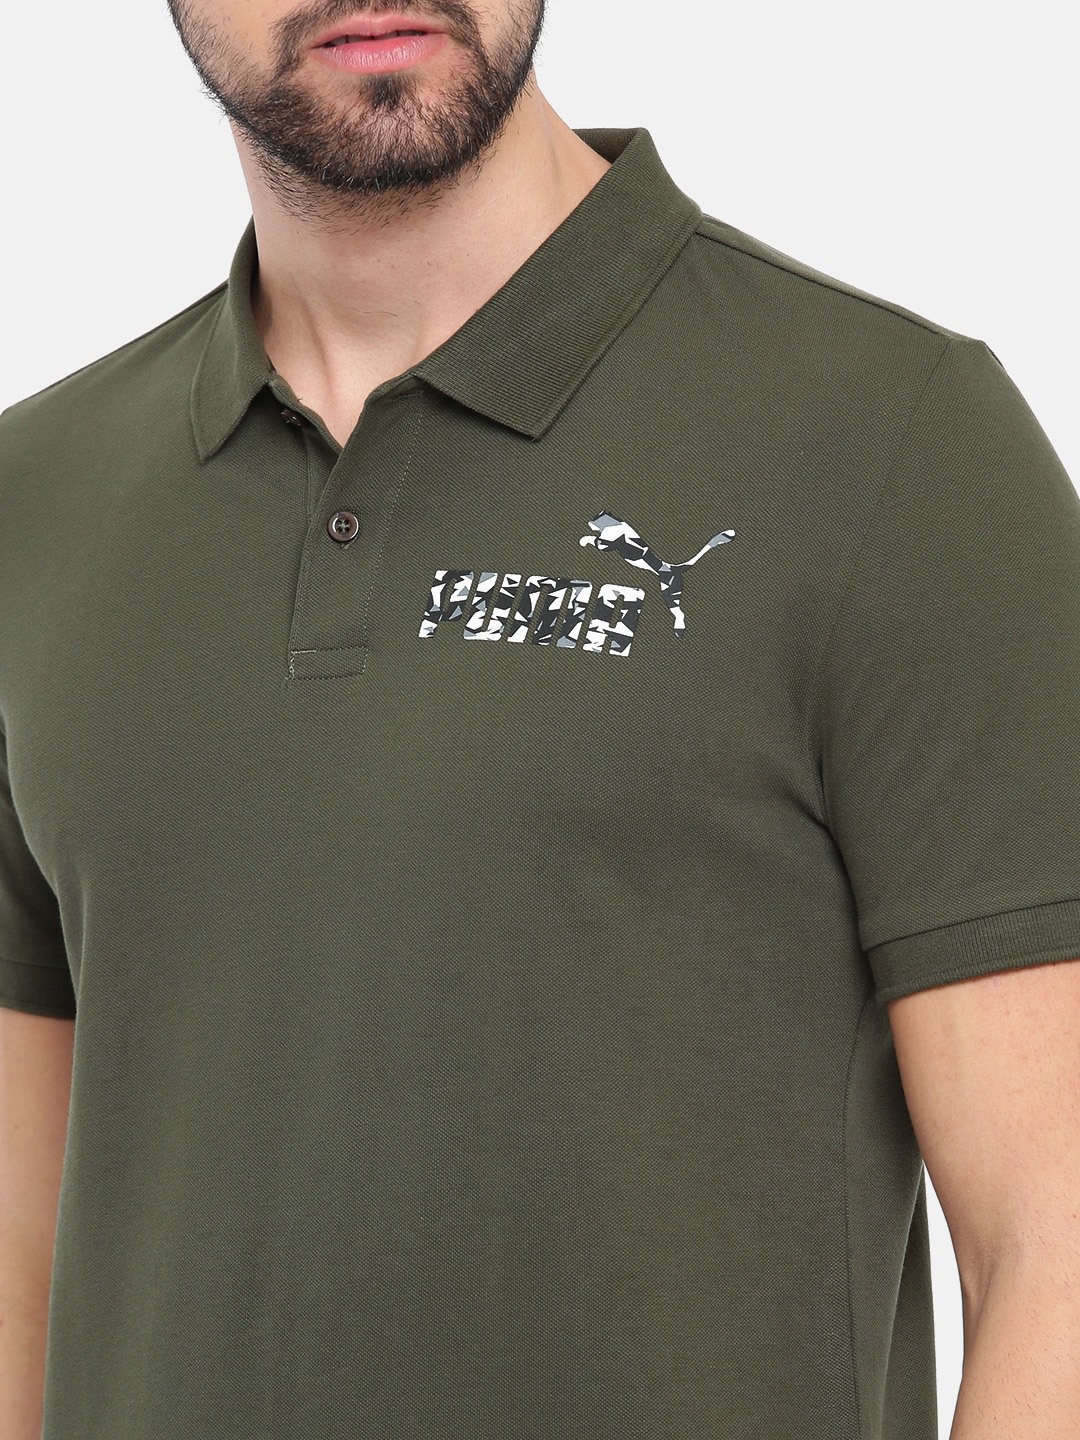 8c770b87 Buy Puma Men Olive Green Graphic Pique Polo I Solid T Shirt ...